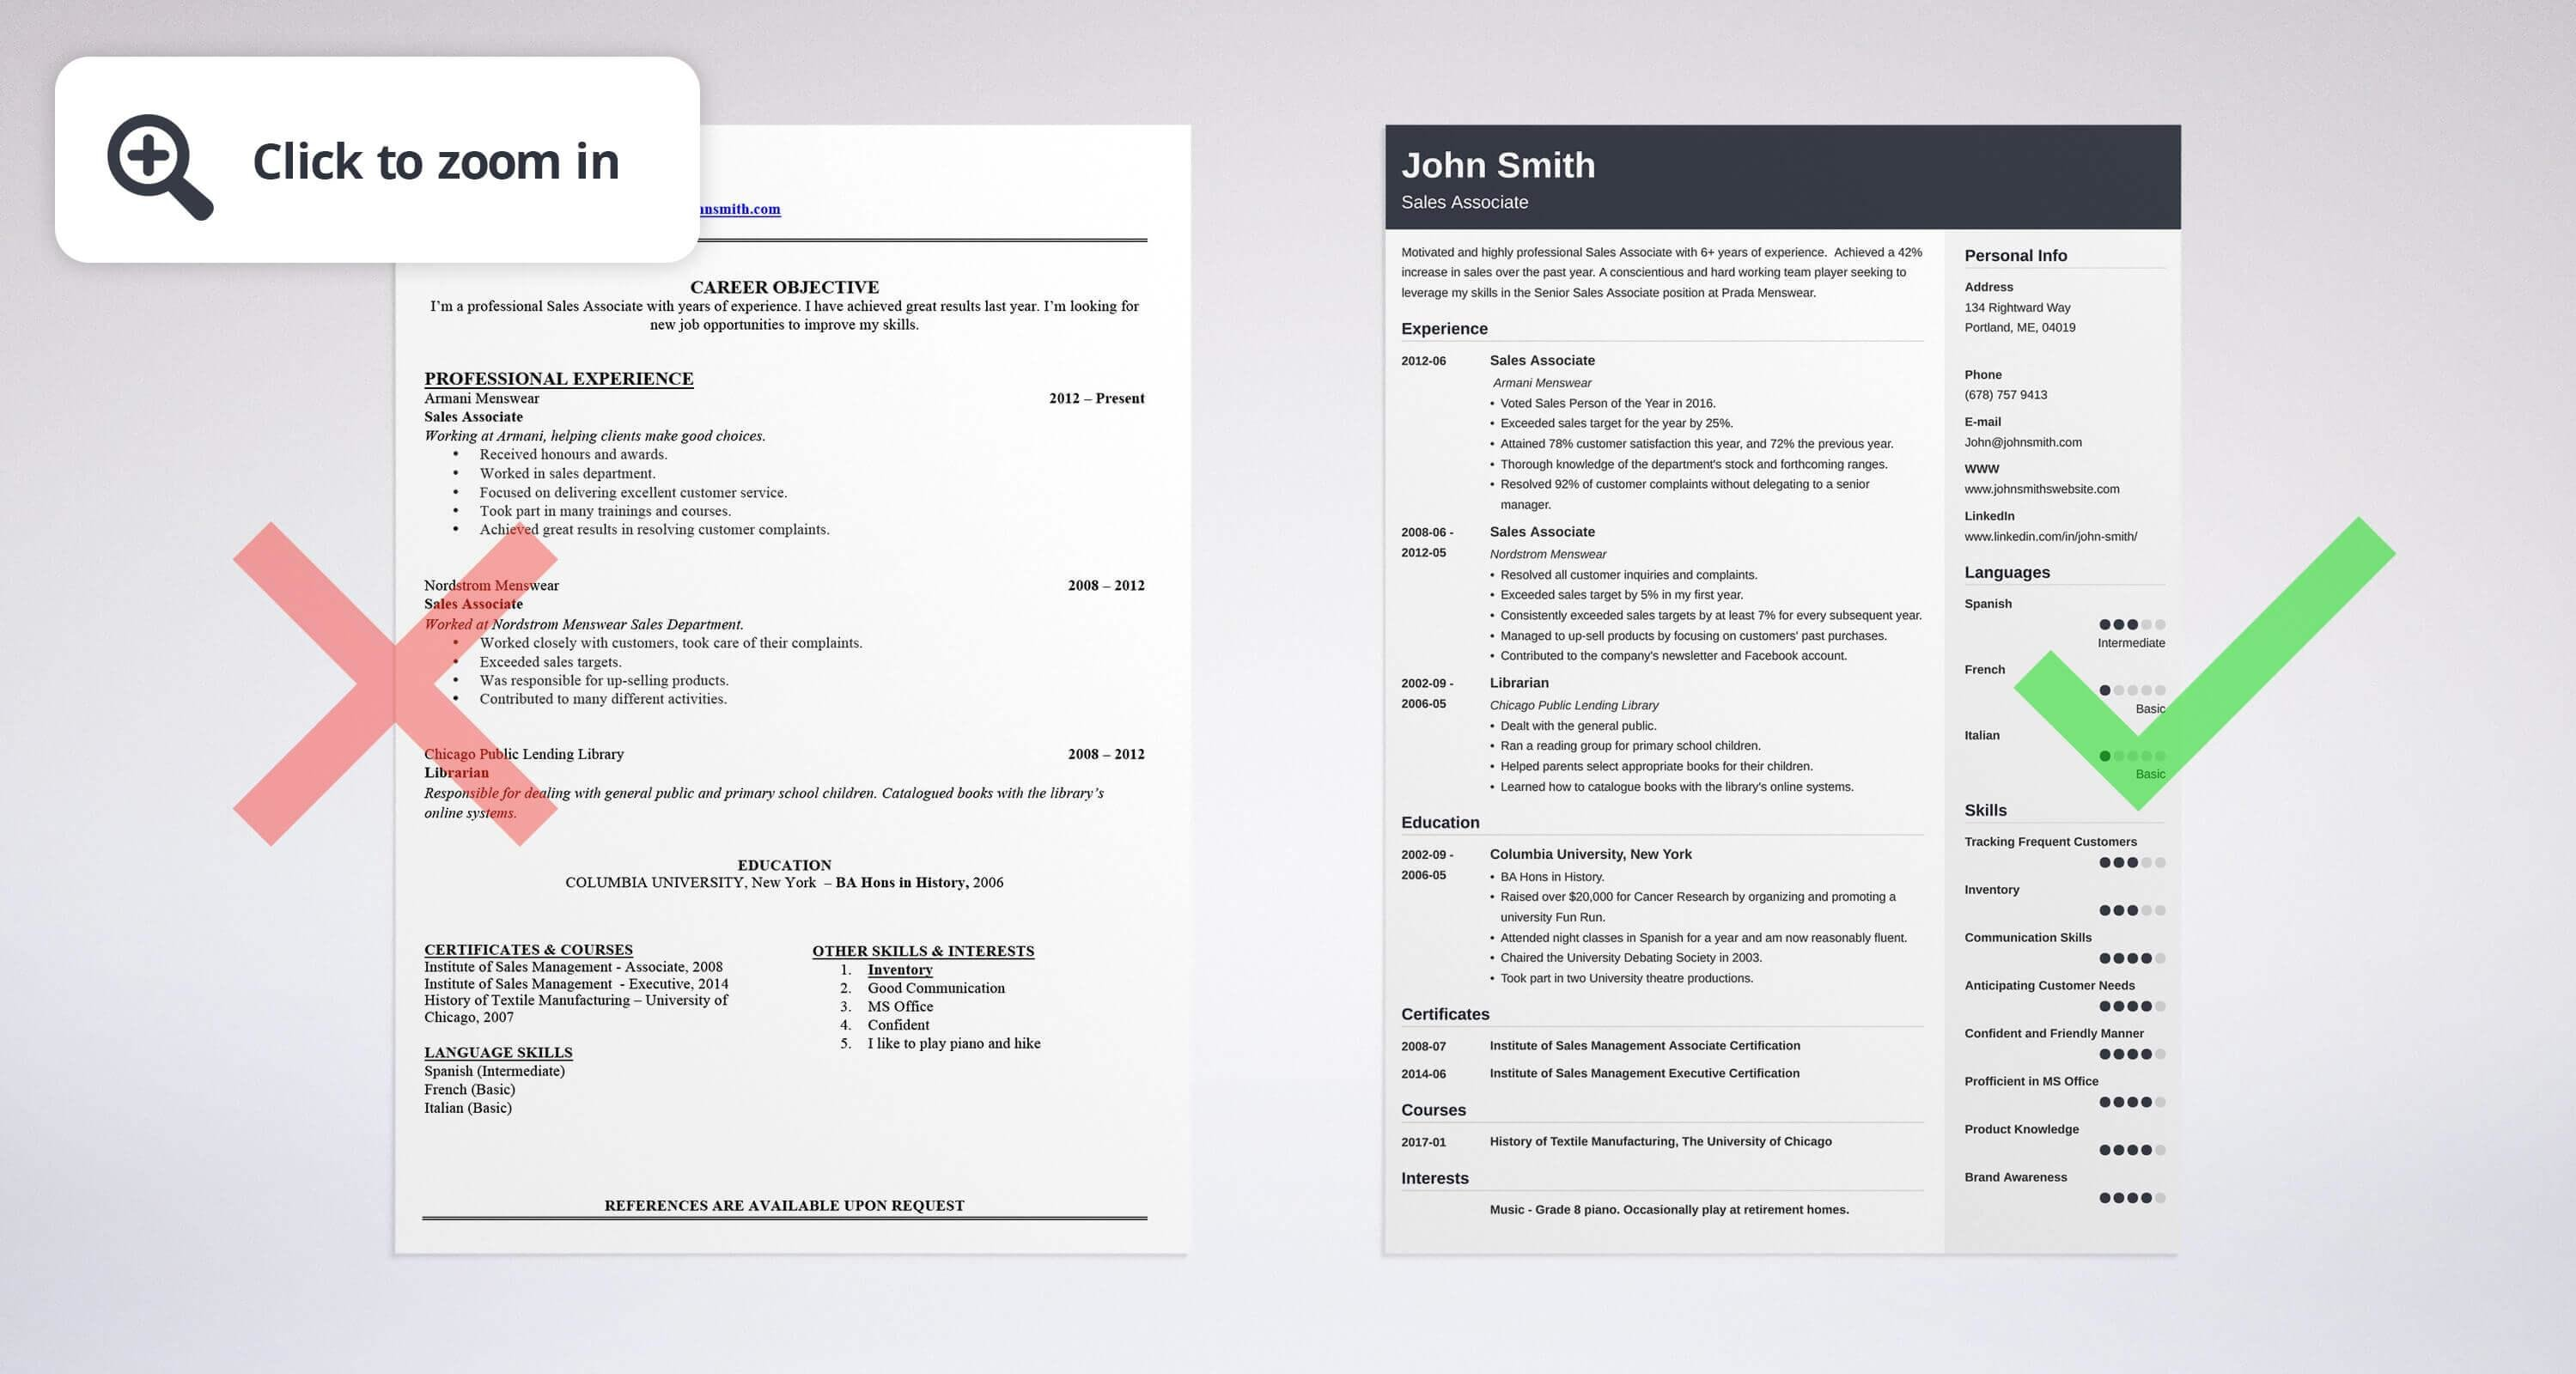 Superior Uptowork In Professional Looking Resume